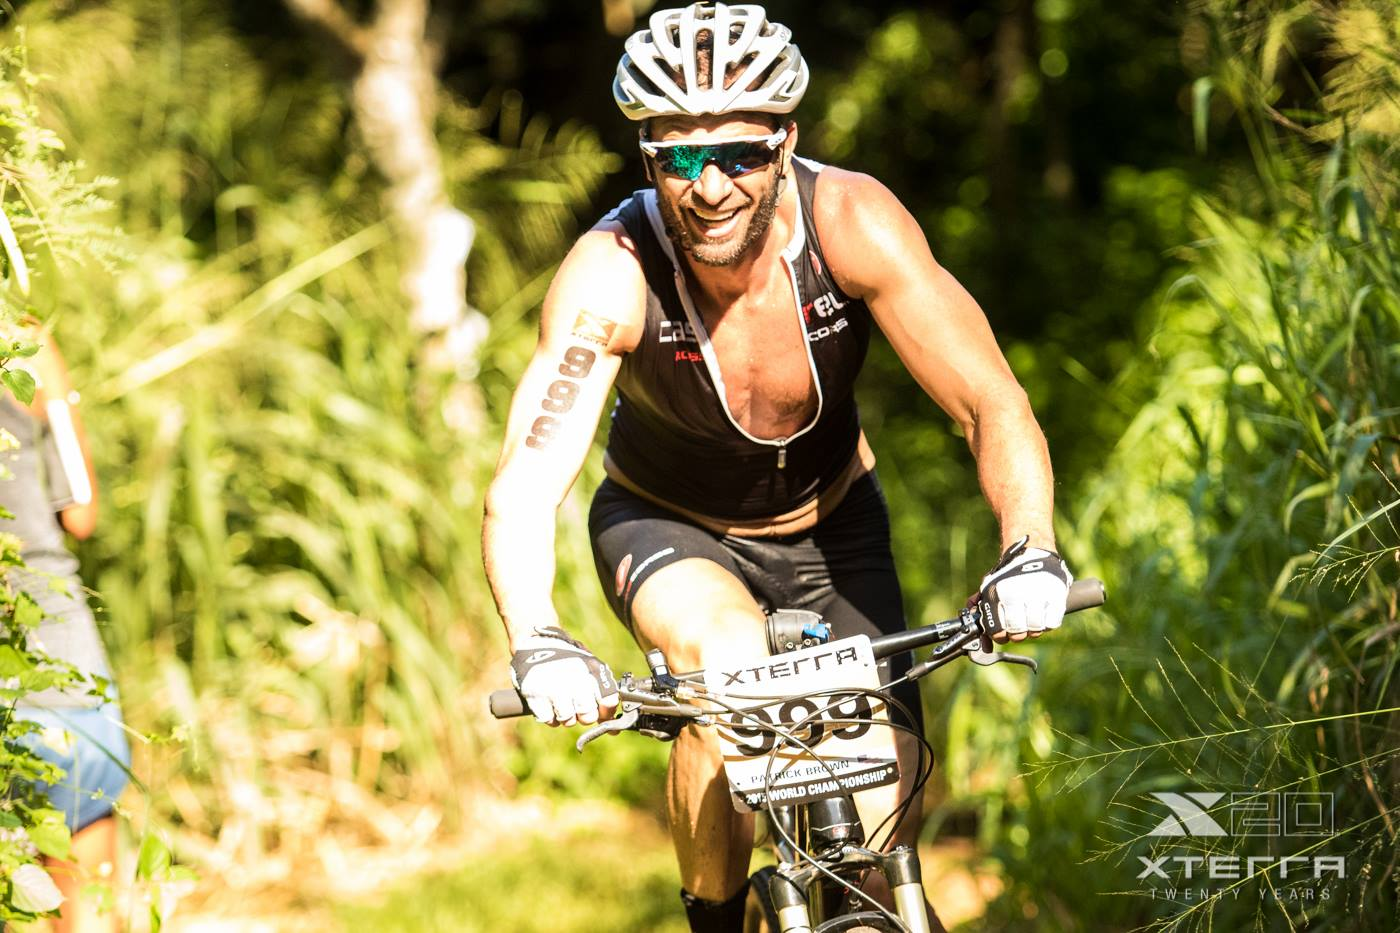 XTERRA_WORLD_CHAMPIONSHIP_2015_00029